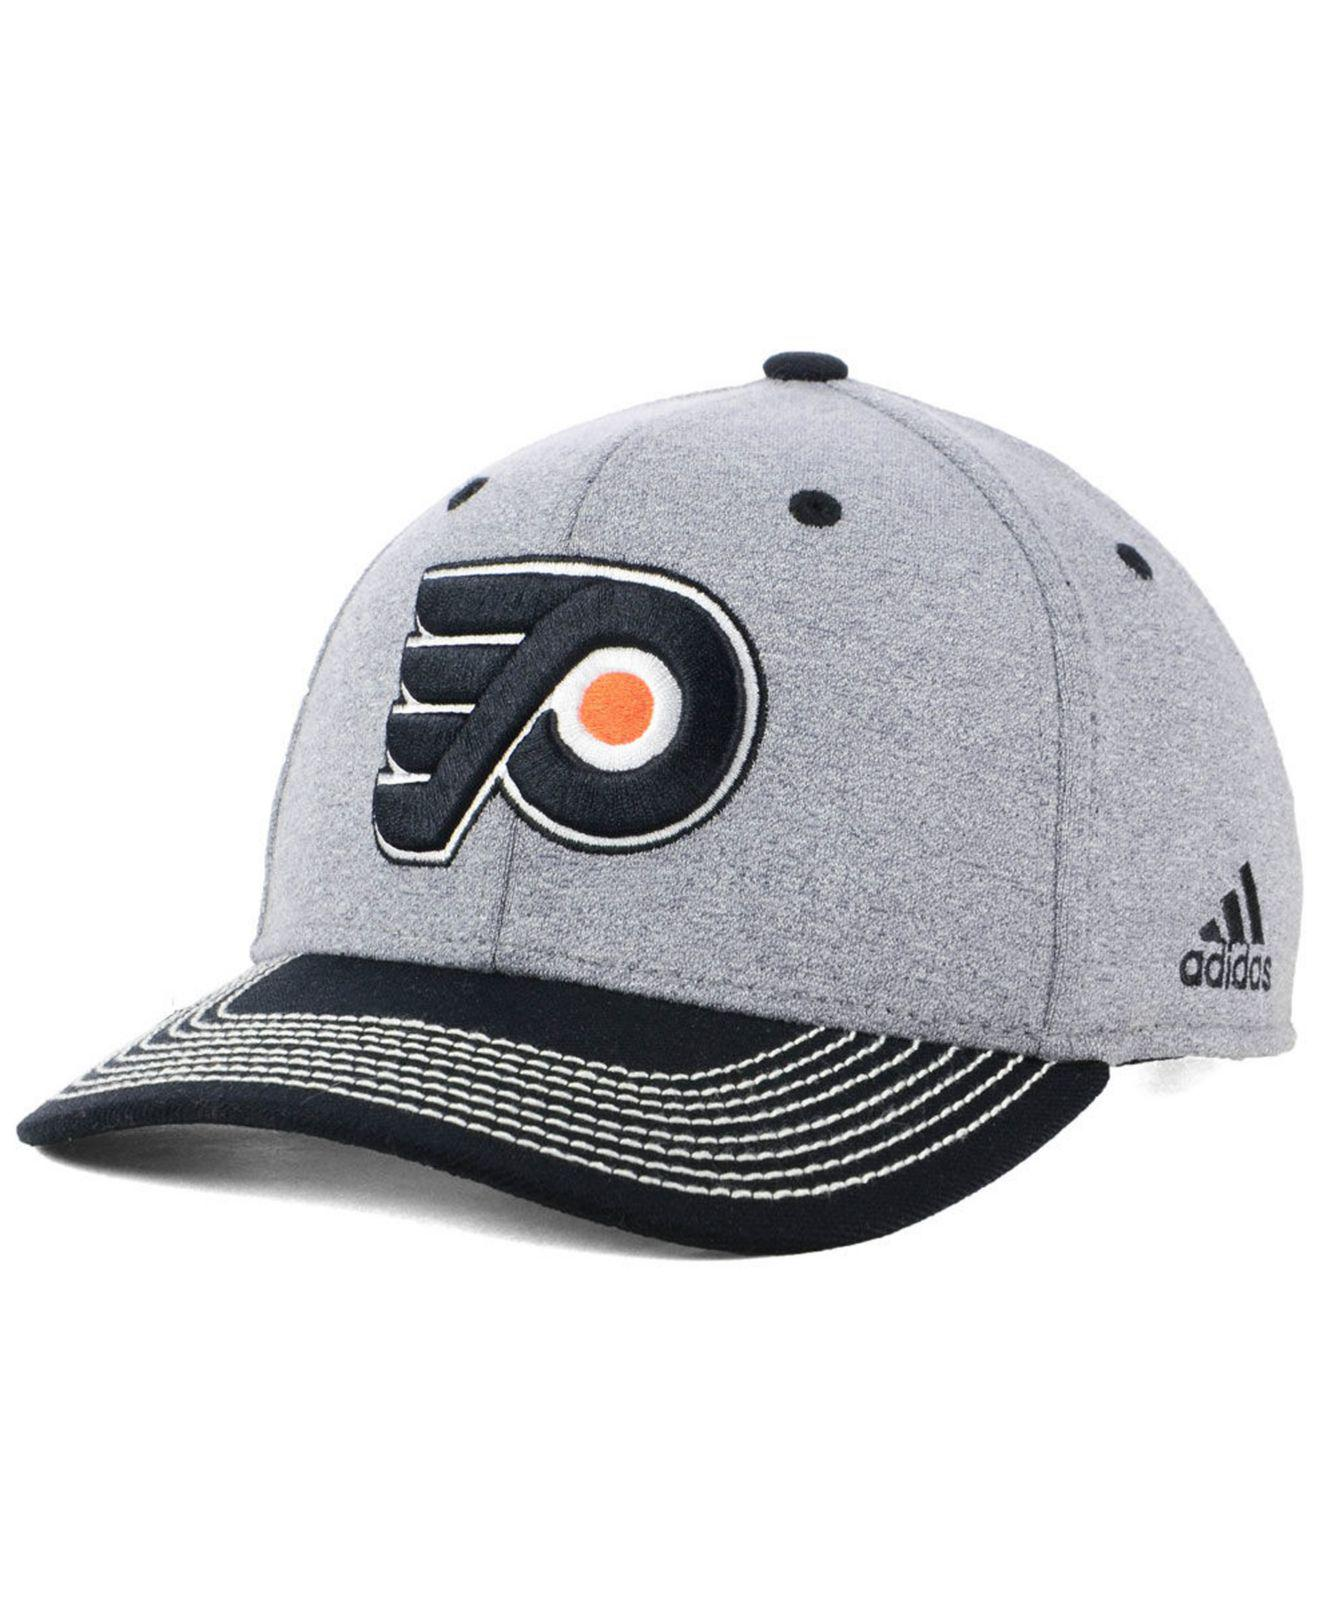 5a407672f4d39 Adidas - Gray Philadelphia Flyers Heather Line Change Cap for Men - Lyst.  View fullscreen